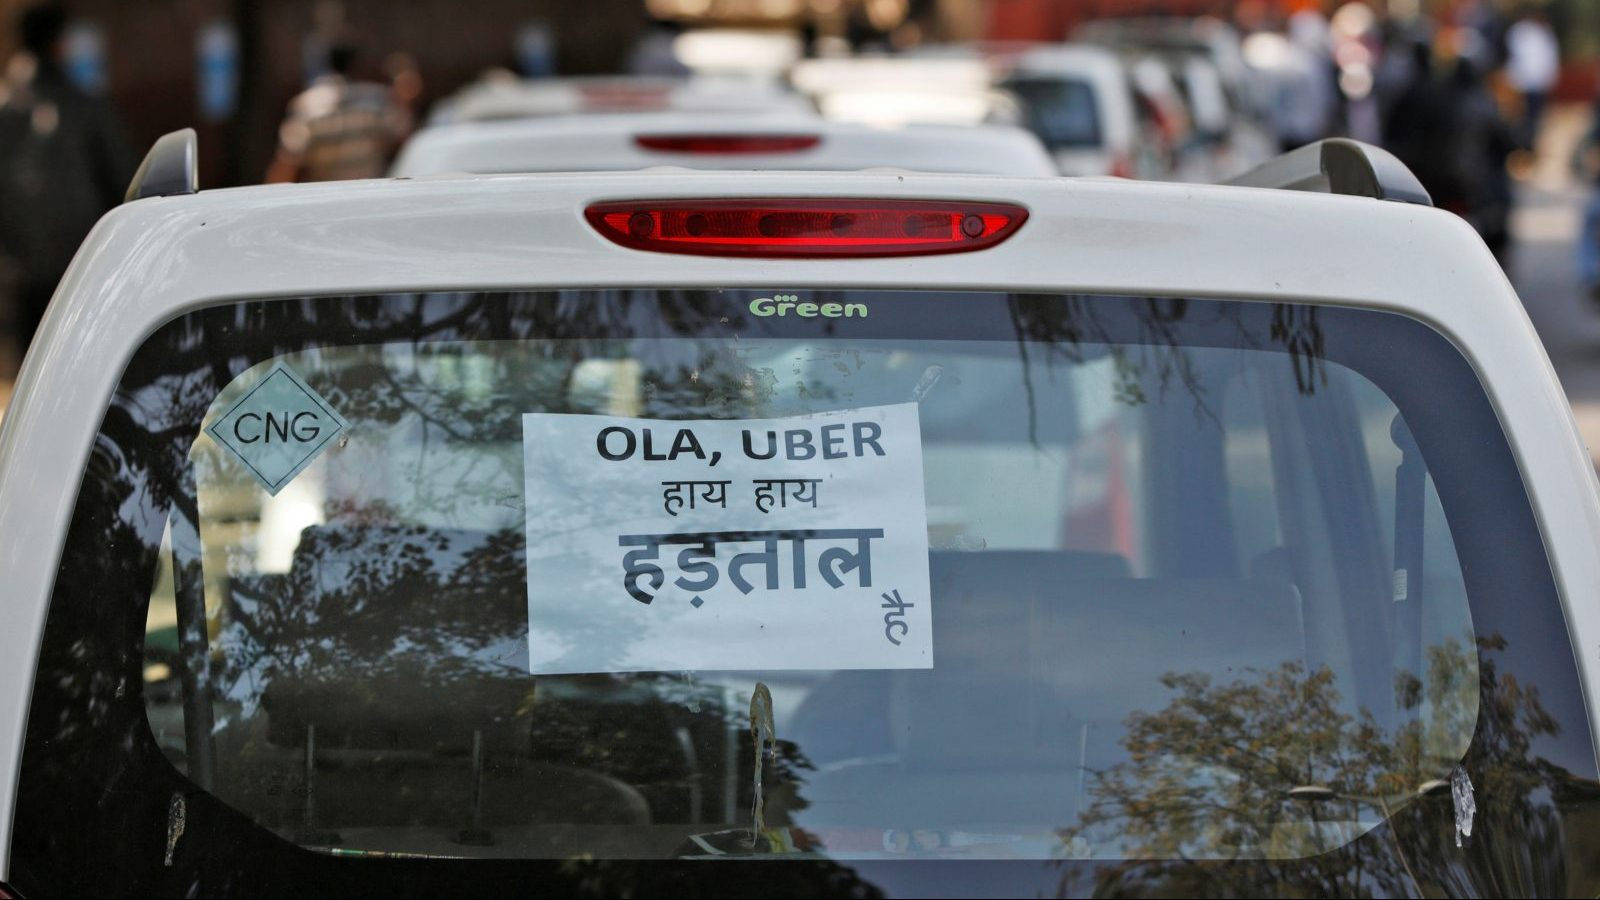 """A note is pasted on a rear window of a car during a protest by Uber and Ola drivers, in New Delhi, India, February 14, 2017. The note reads """"Ola and Uber it is Strike"""". REUTERS/Adnan Abidi - RC18A770D170"""